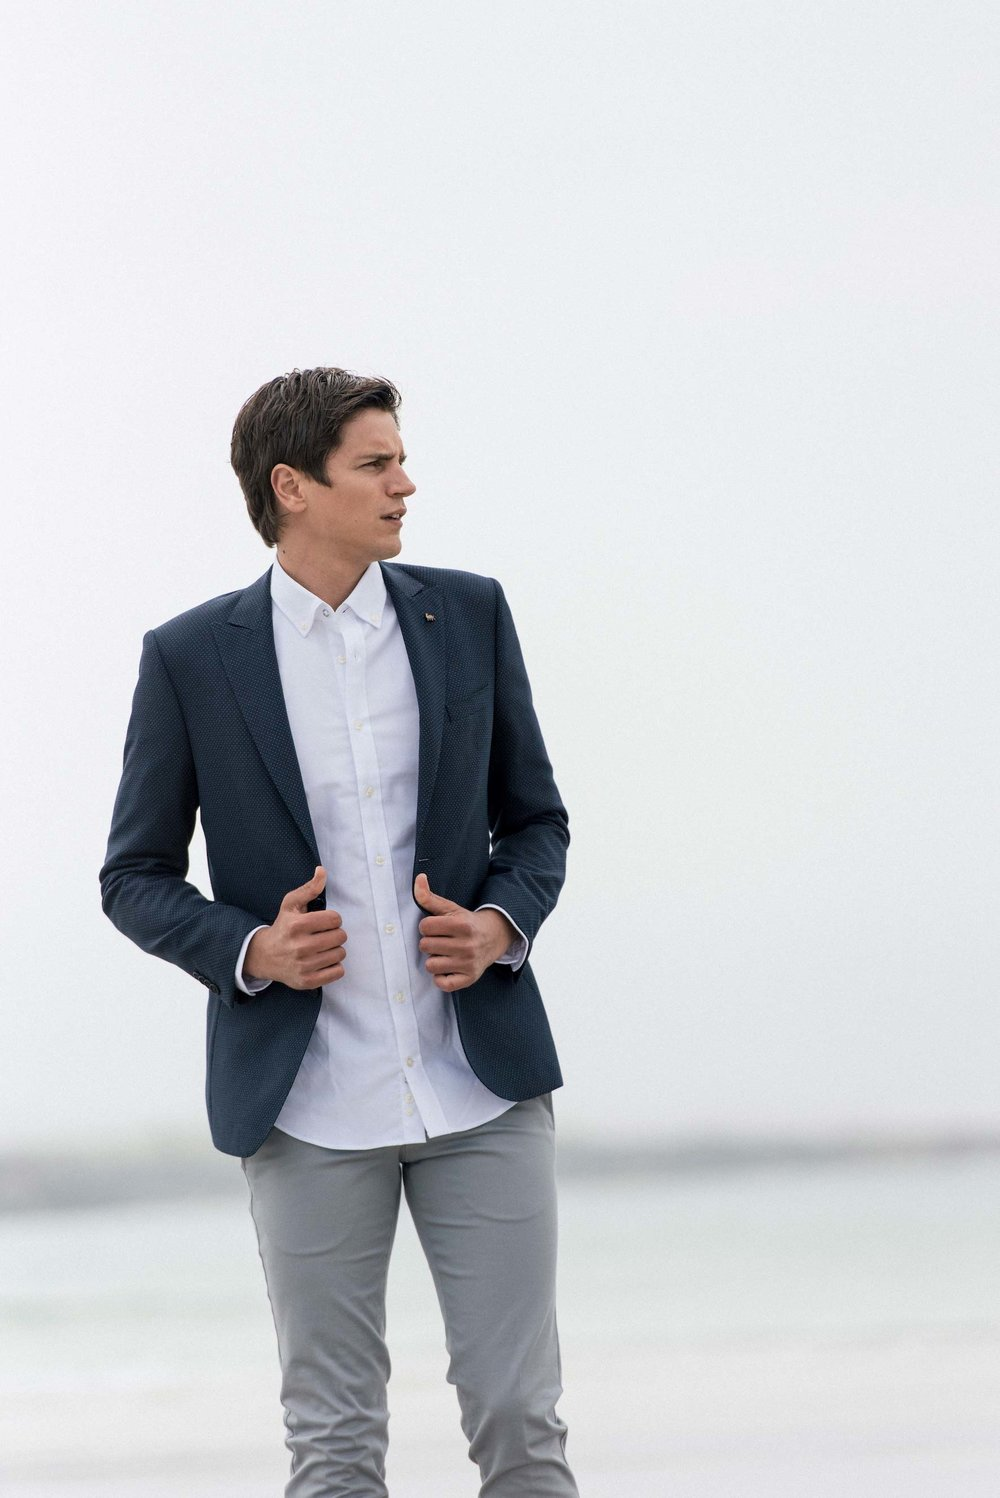 blazers & Jackets - A good blazer is one of the most flexible items a man can have. Easily dress one up or down to suit the occasion in question by complementing it with a variety of clothes, be it a dress shirt and tie, polo shirt or even a T-shirt.